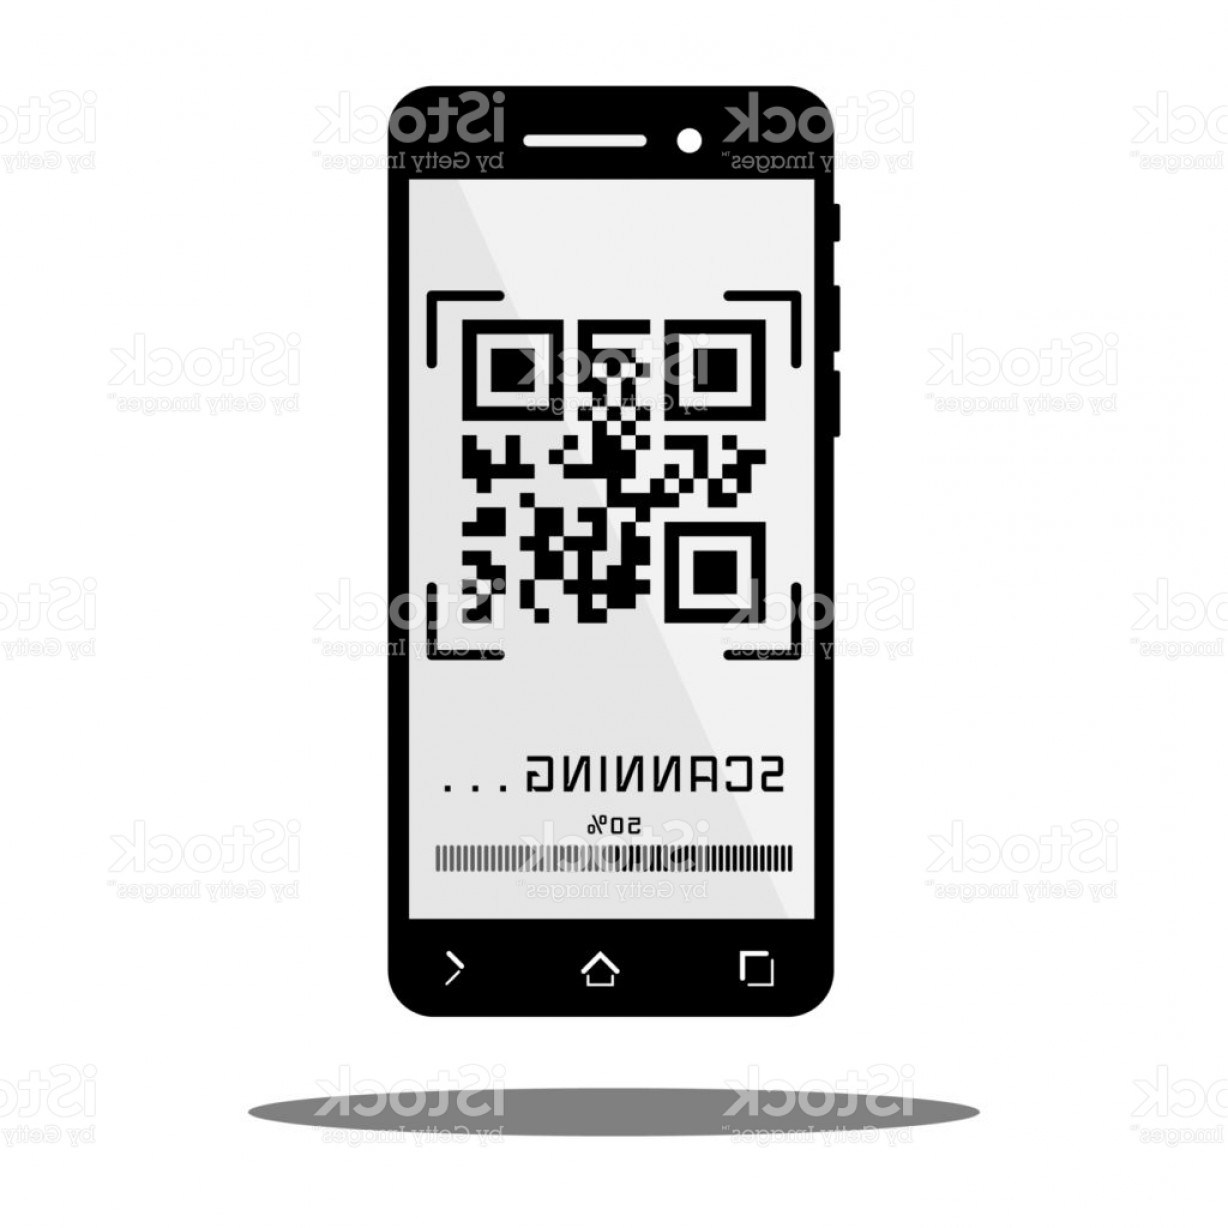 QR Mobile Phone Vector: Scan Qr Code With Black Mobile Phone Gm